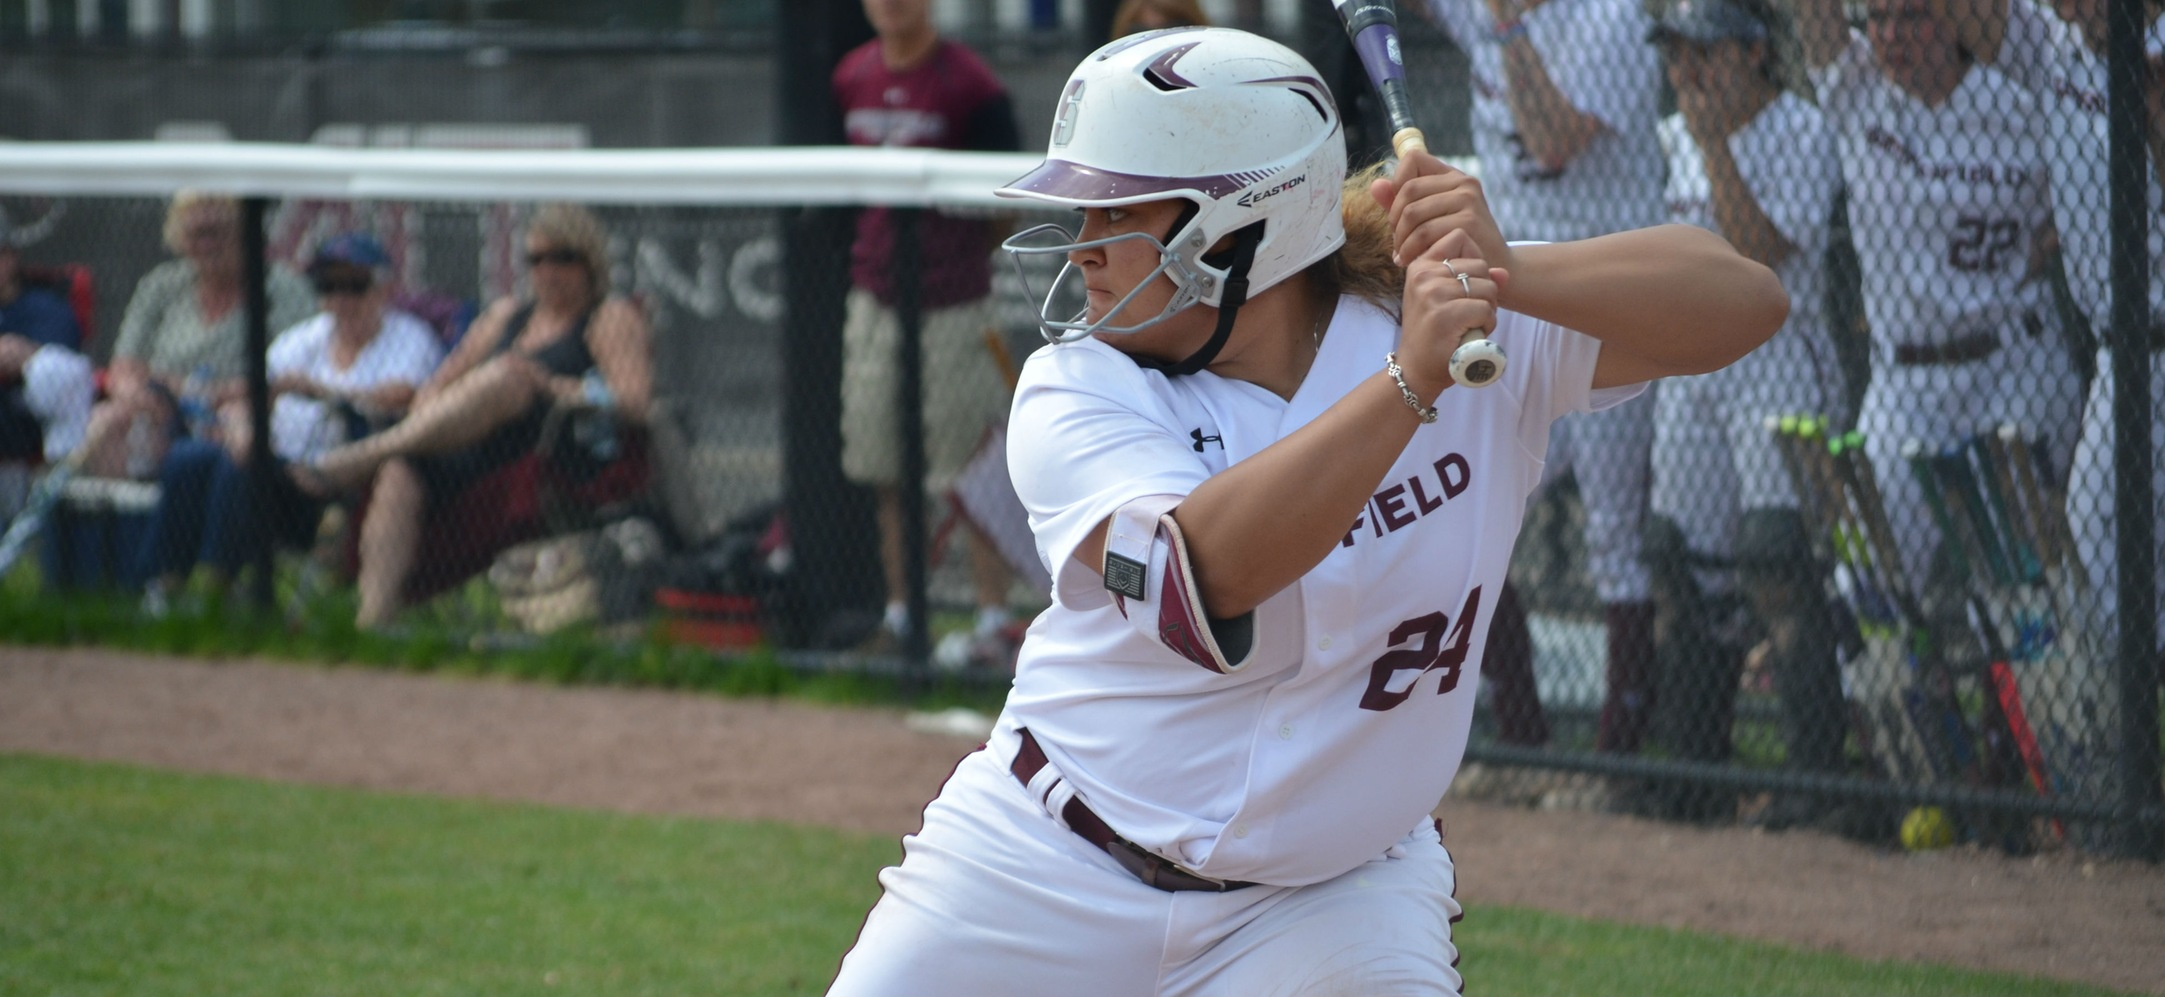 Softball Falls to WPI, 3-2, in NEWMAC Championship Tournament Elimination Game